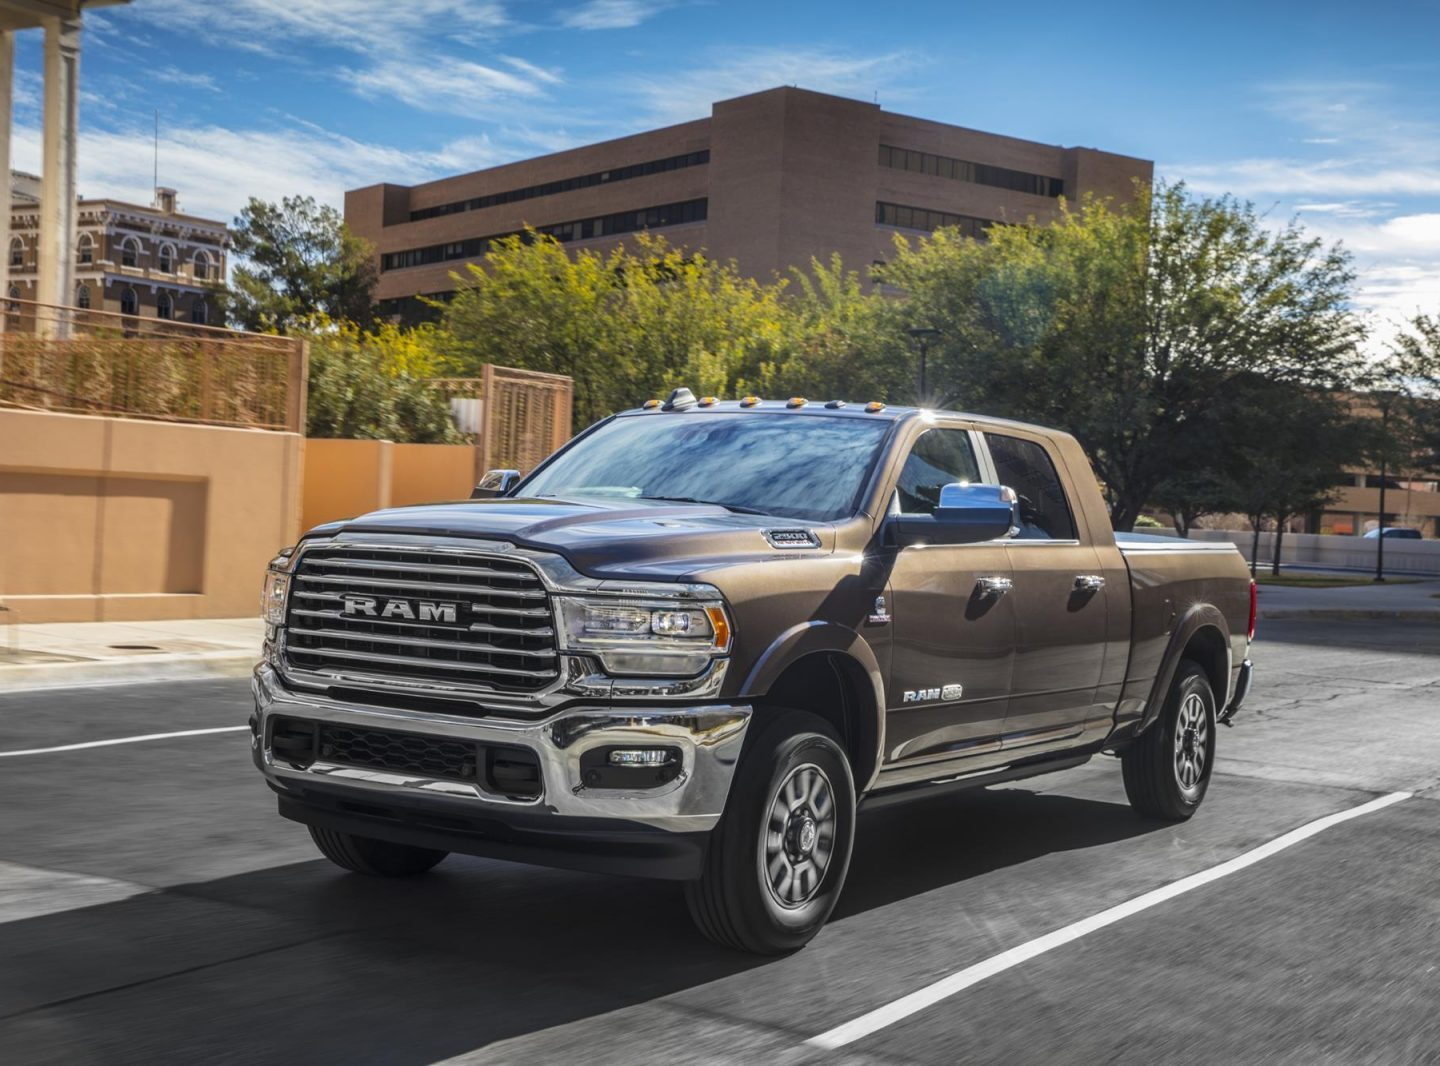 2020 Ram 2500 Remains Big, Beefy, and Over-Capable